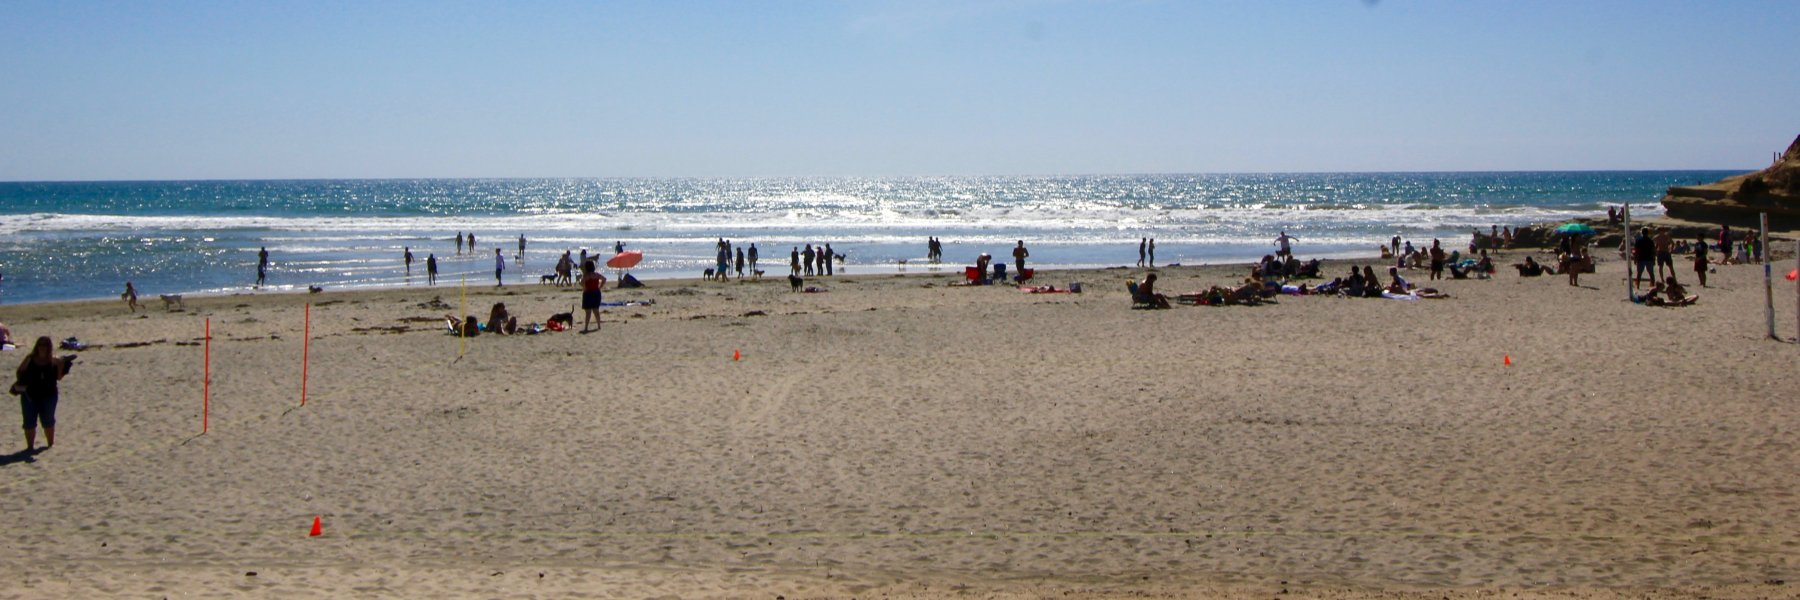 Beach Colony is a community of homes in Del Mar California